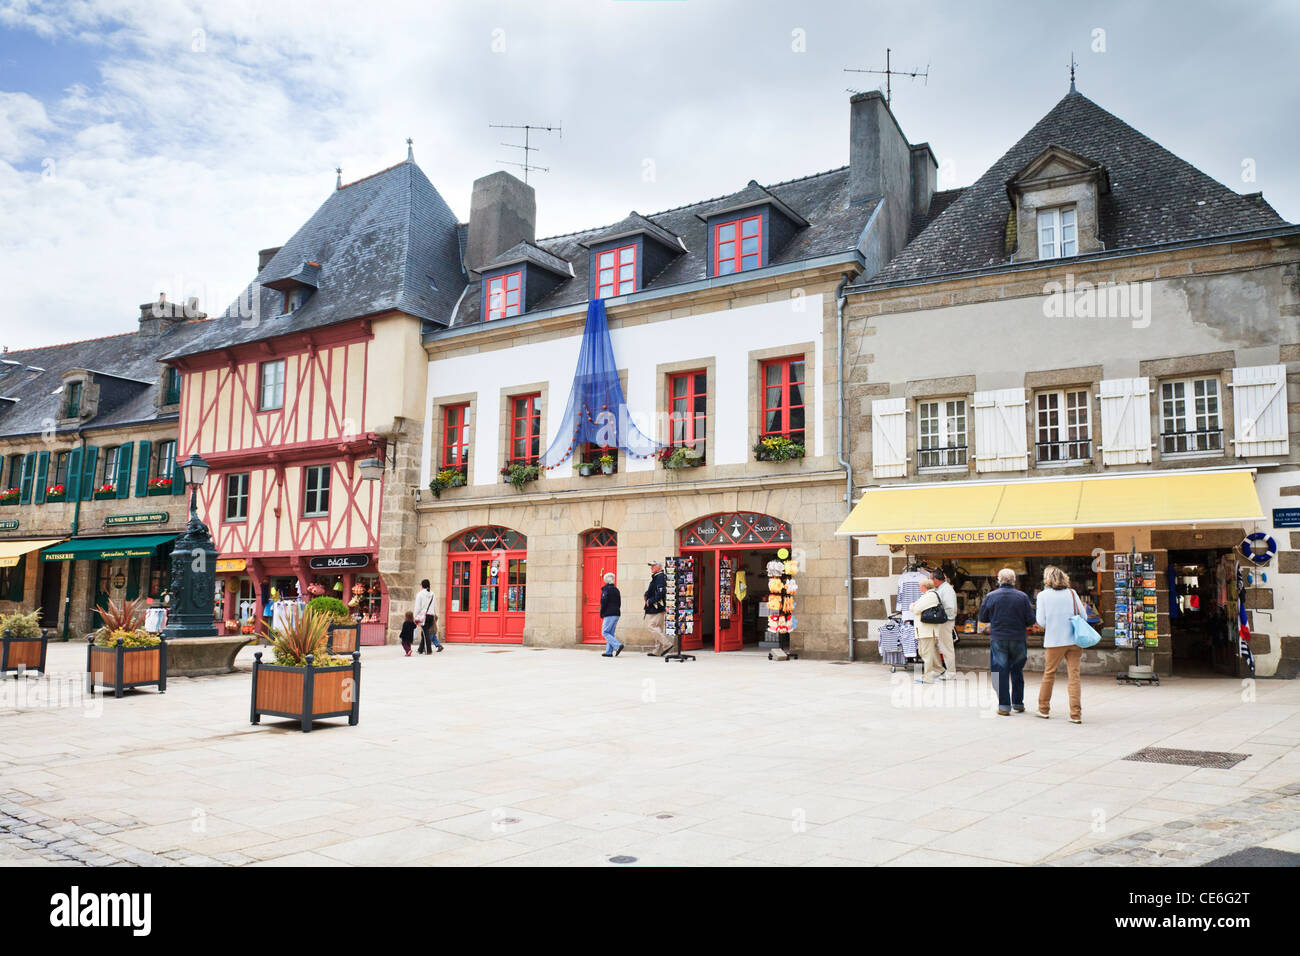 People strolling in the Town Square of Concarneau, Brittany, France. - Stock Image